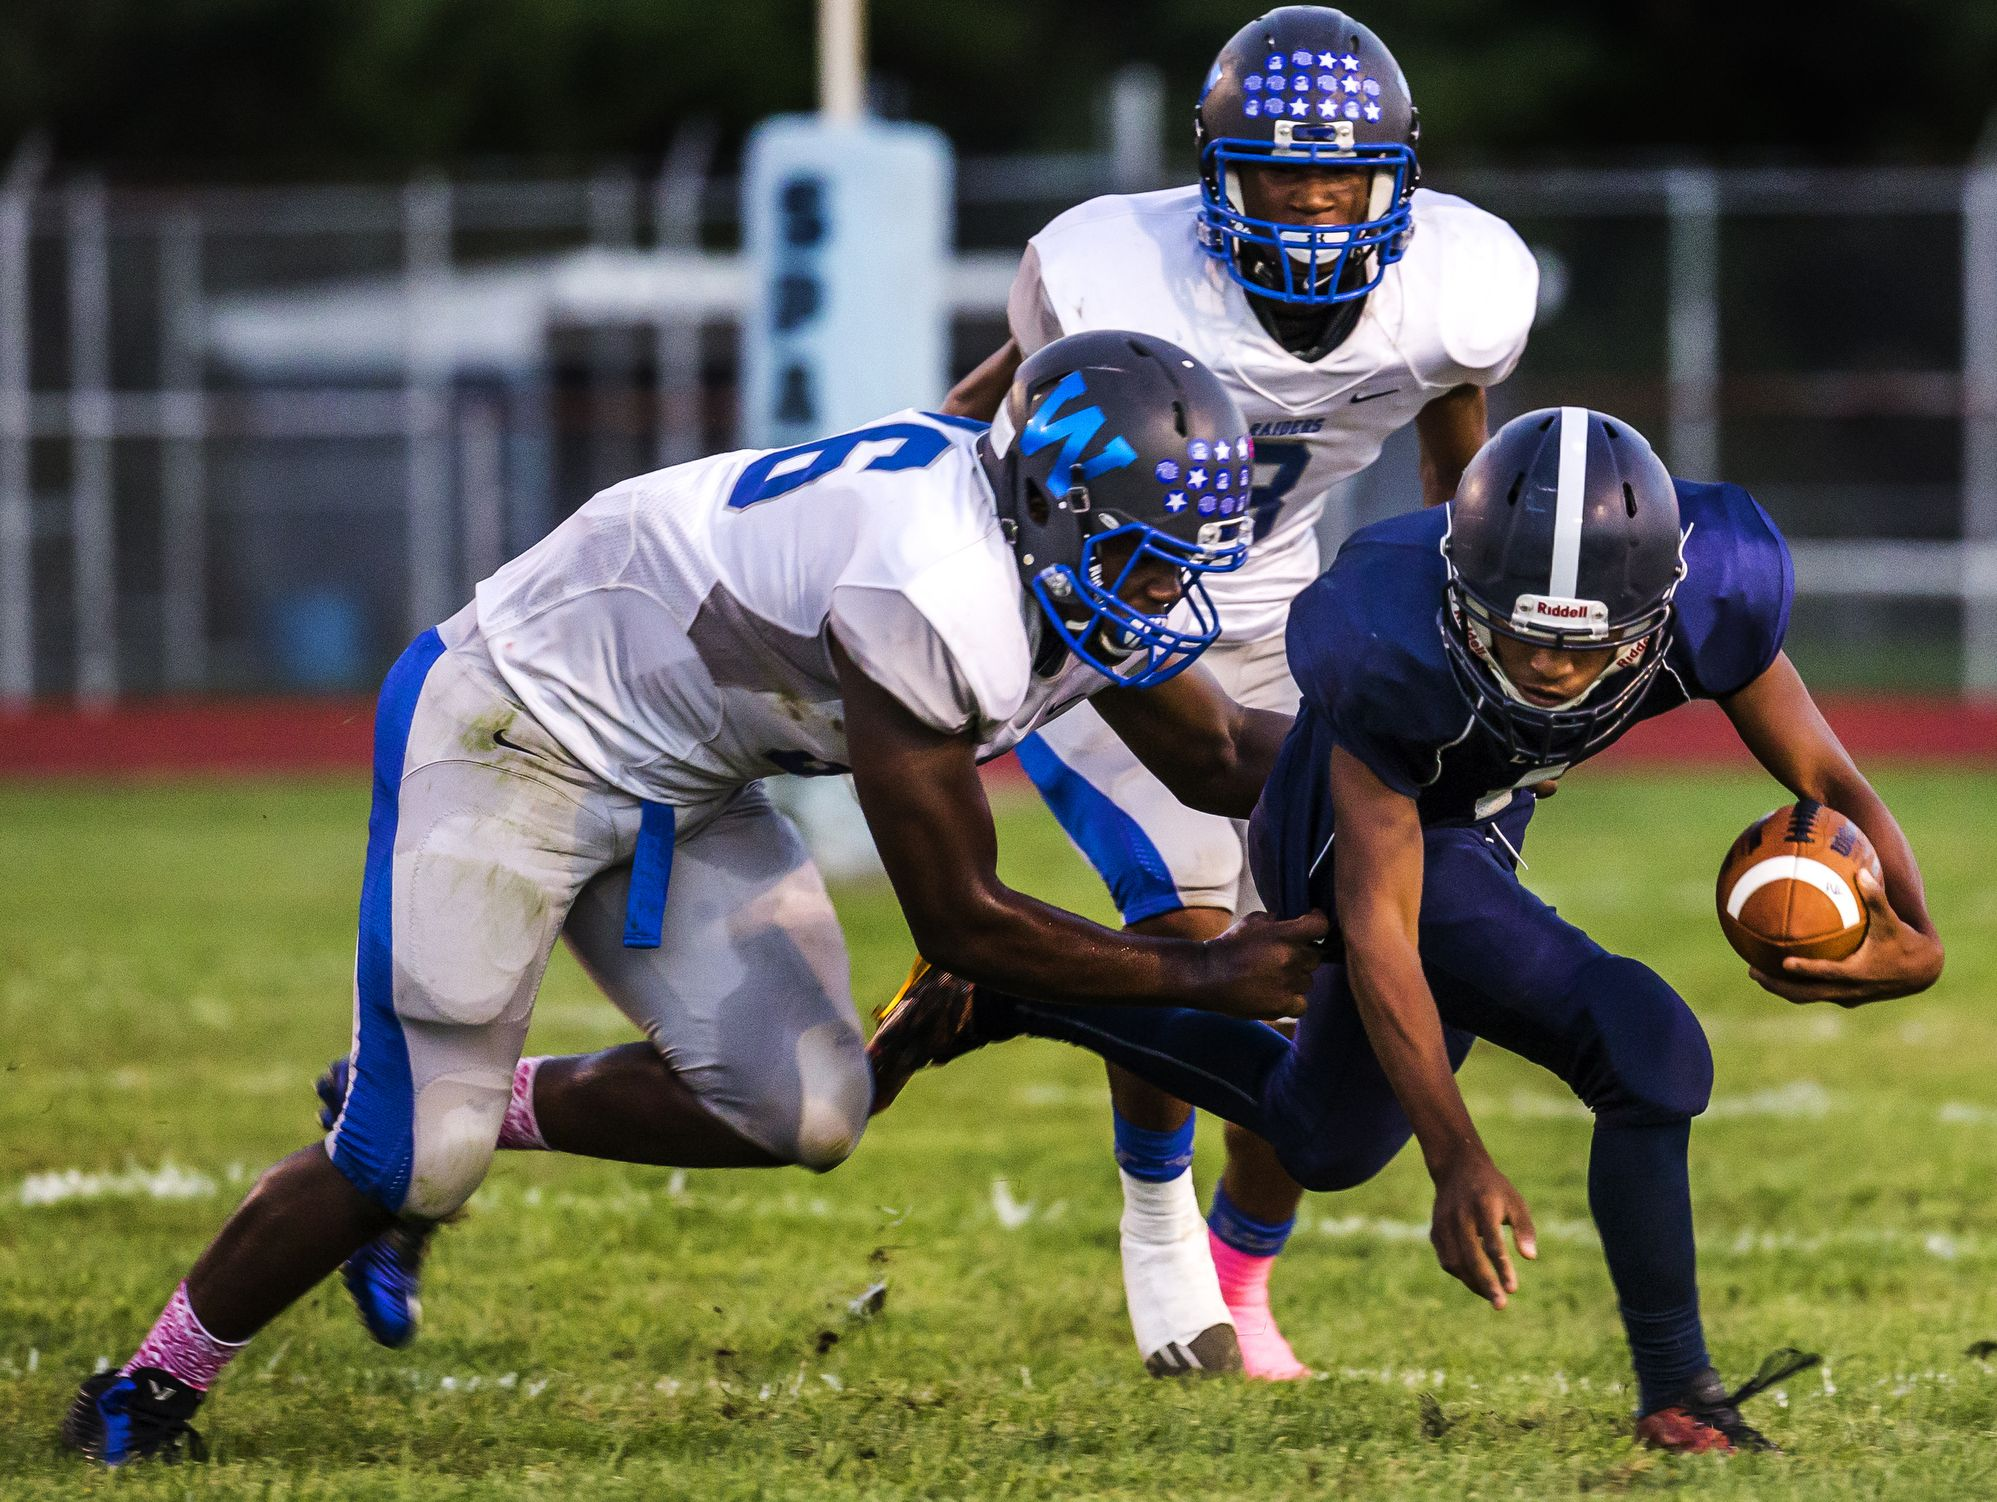 Lake Forest quarterback Xavier Daniels is sacked by Woodbridge's Shymere Vessels in the second quarter of Woodbridge's 32-0 win over Lake Forest at Lake Forest High School in Felton on Monday evening.